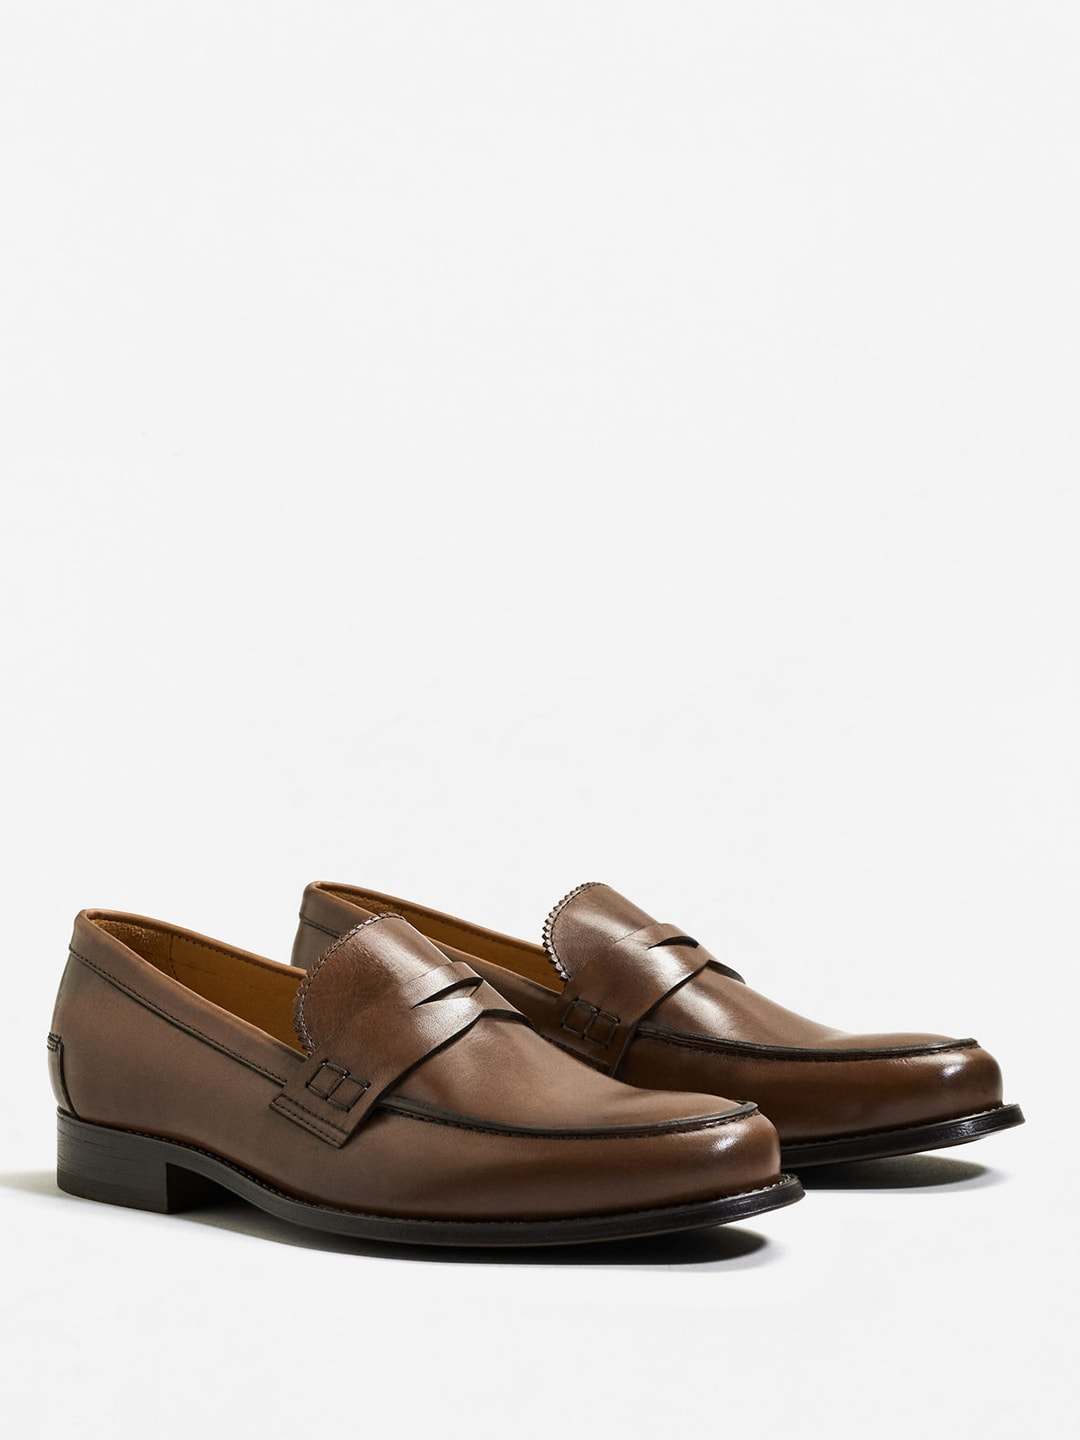 MANGO MAN Brown Leather Formal Loafers image